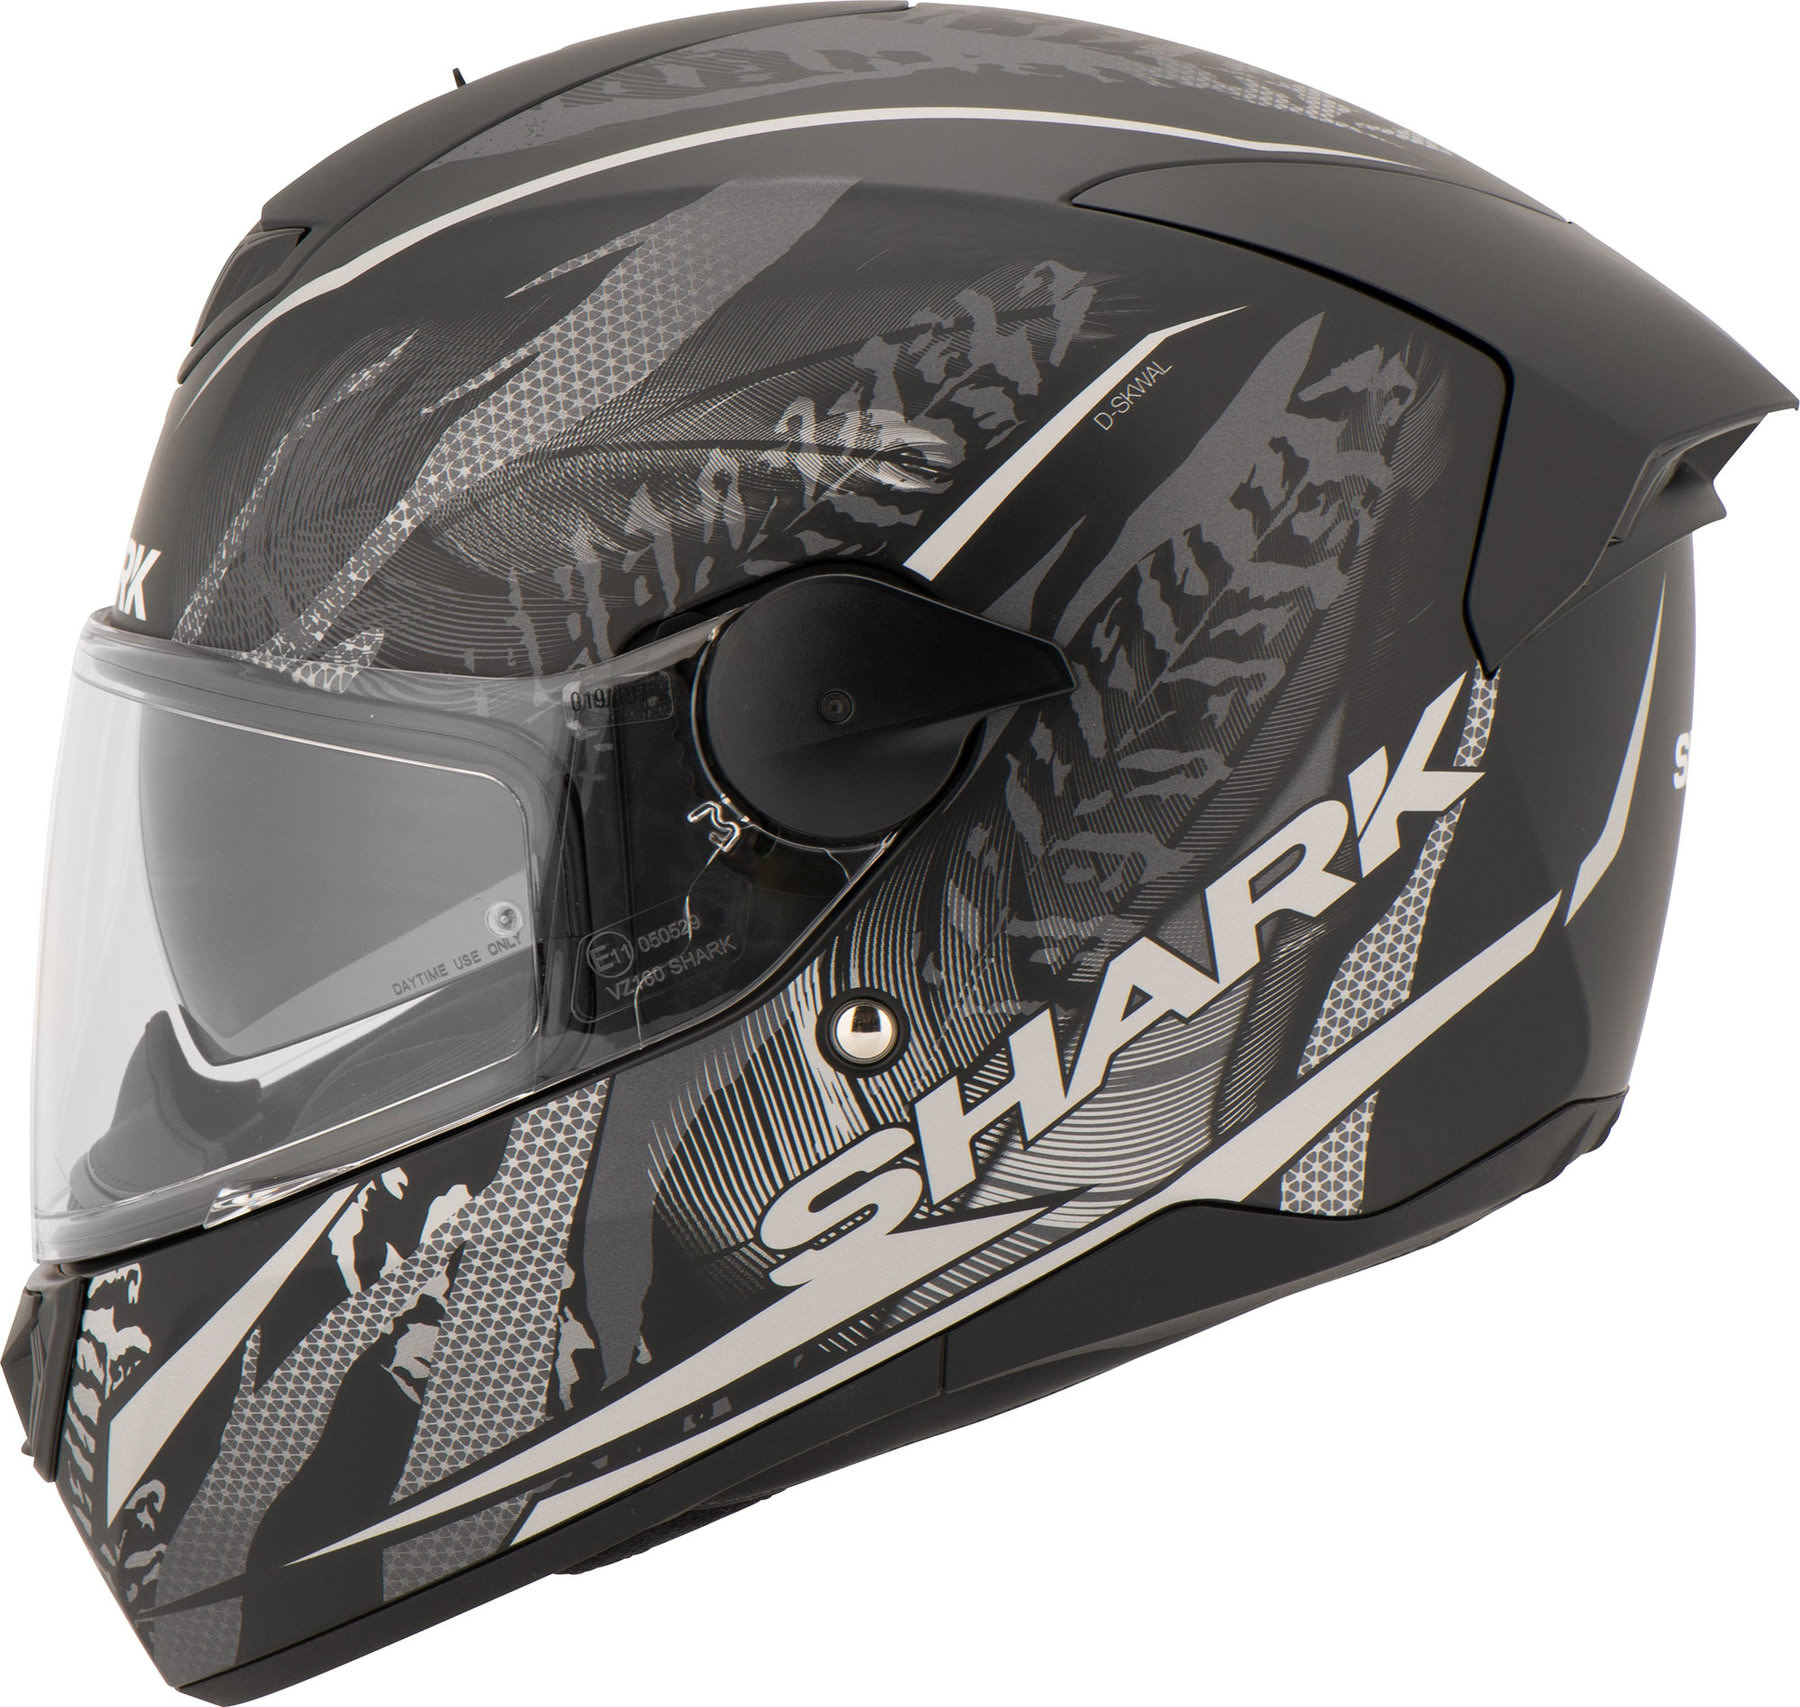 Buy Shark D-Skwal 2 Shigan, Full-Face Helmet | Louis motorcycle clothing  and technology